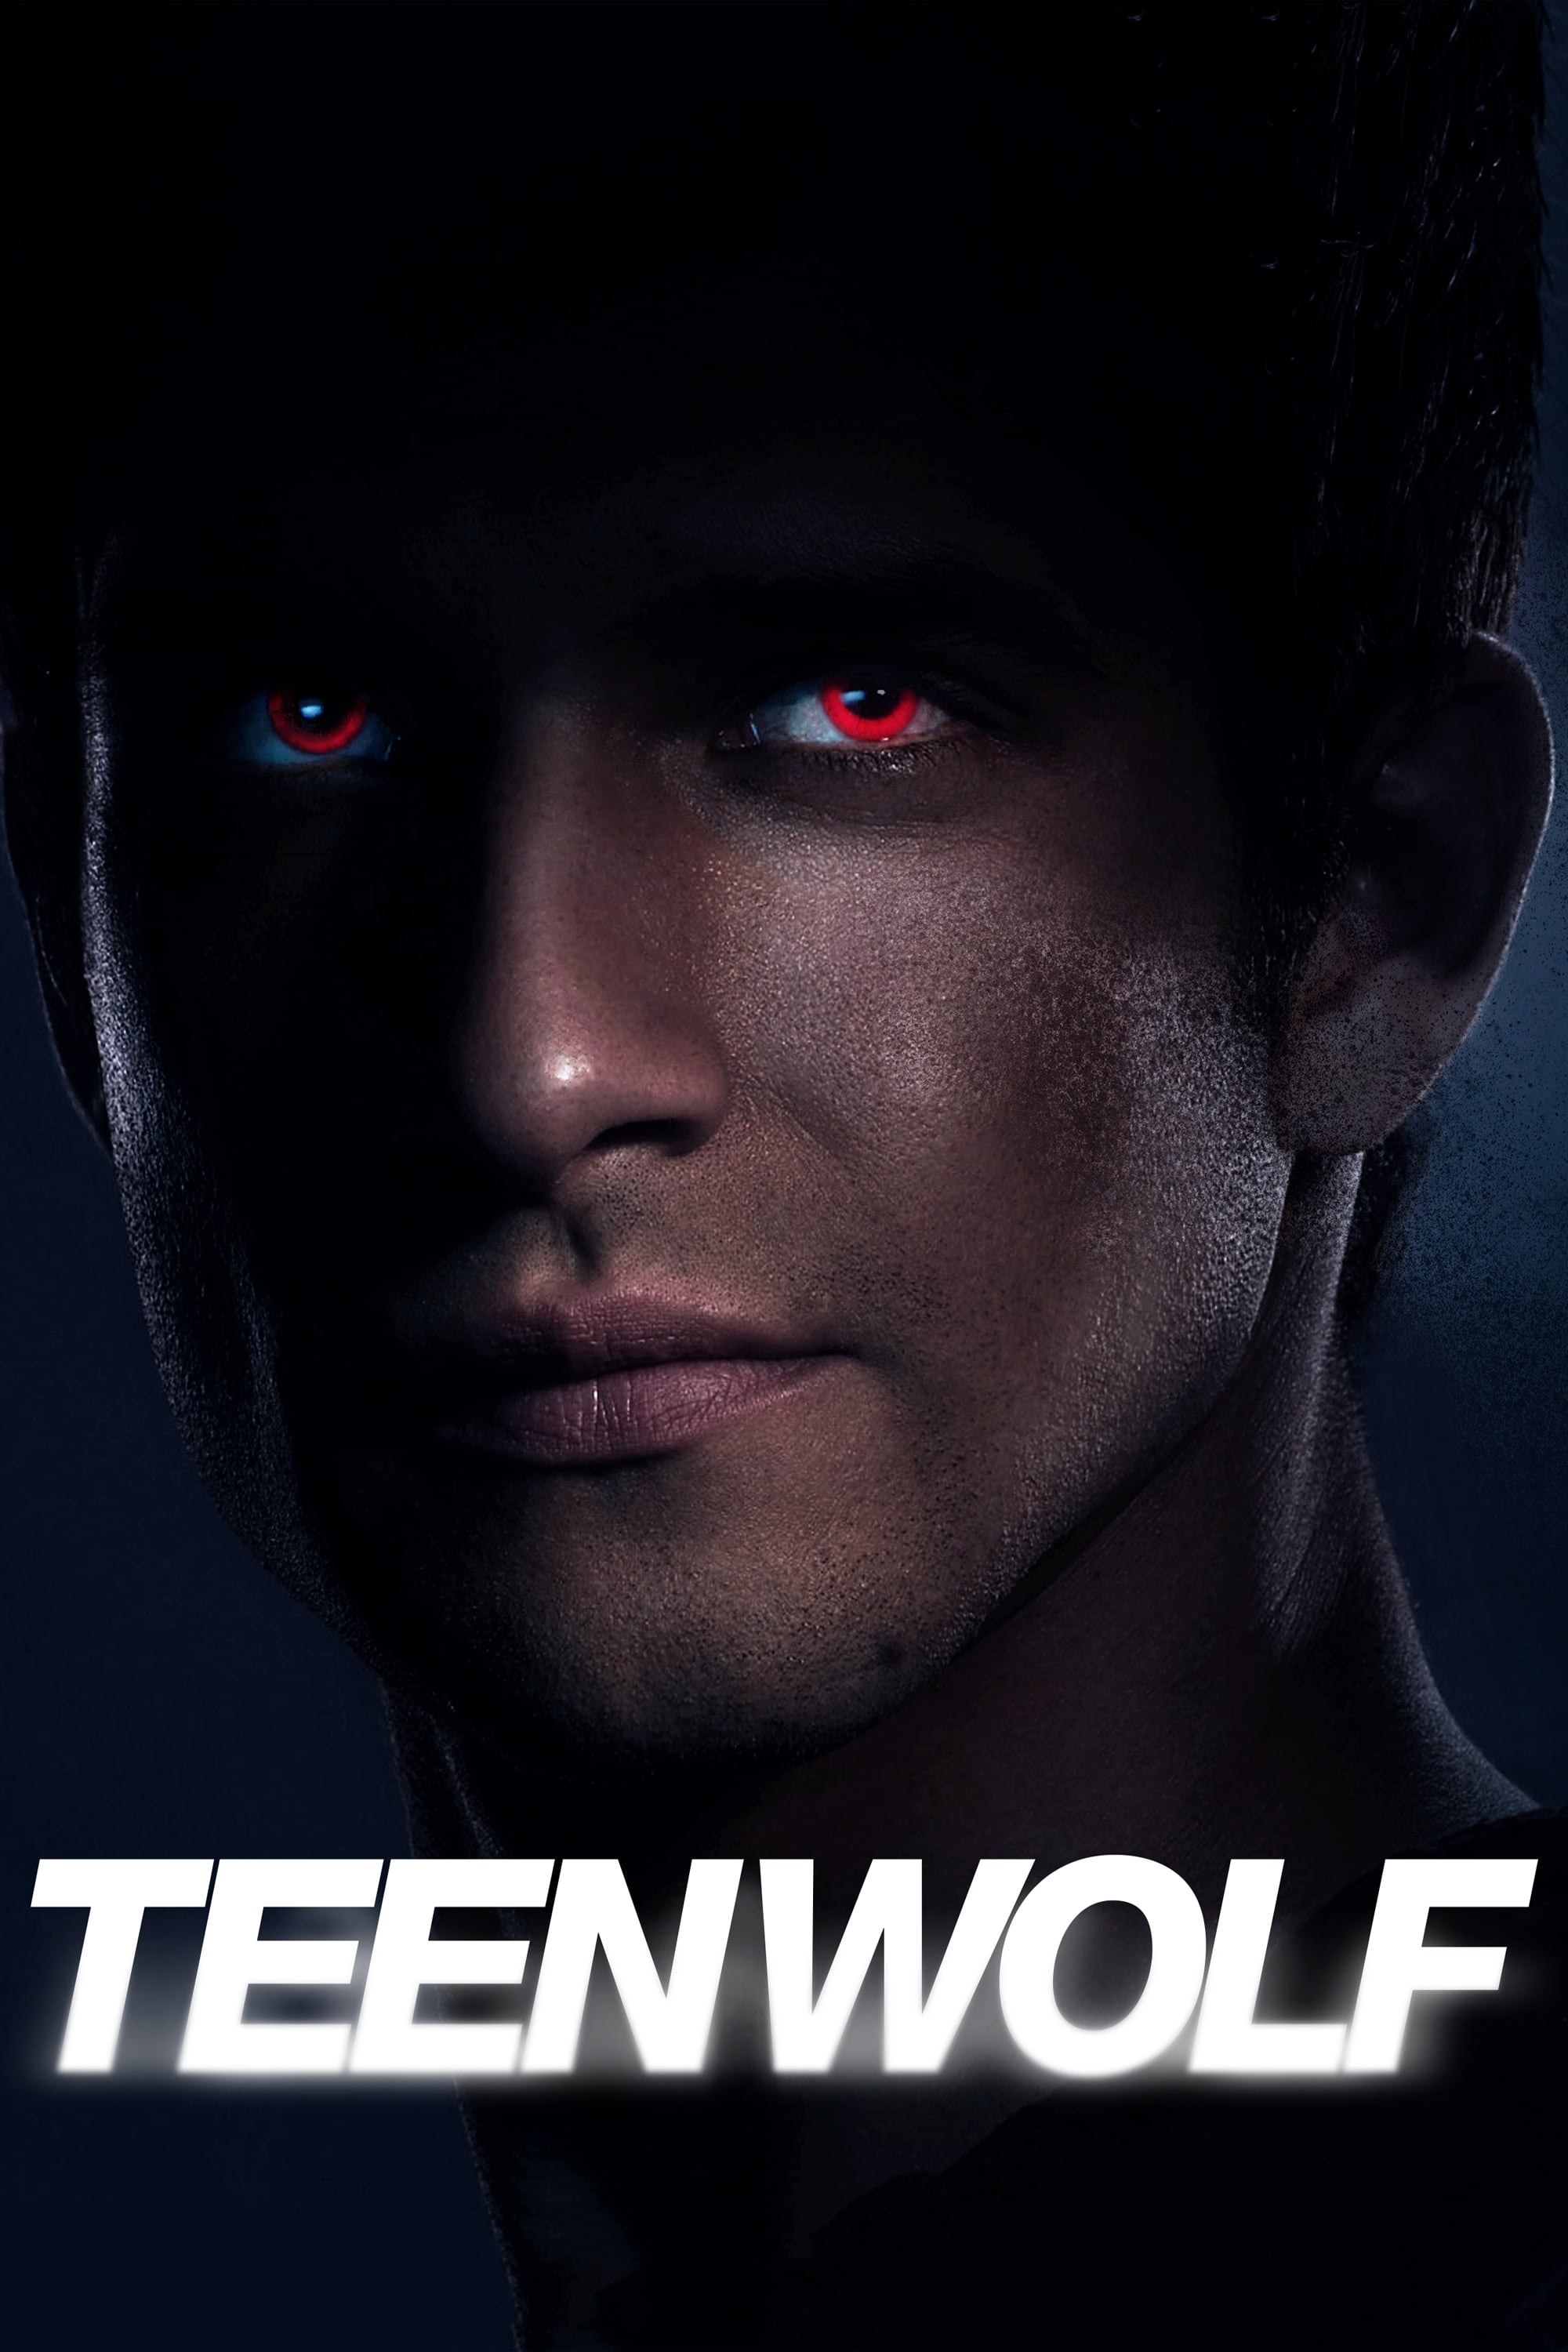 Teen Wolf Season 3 Episode 10